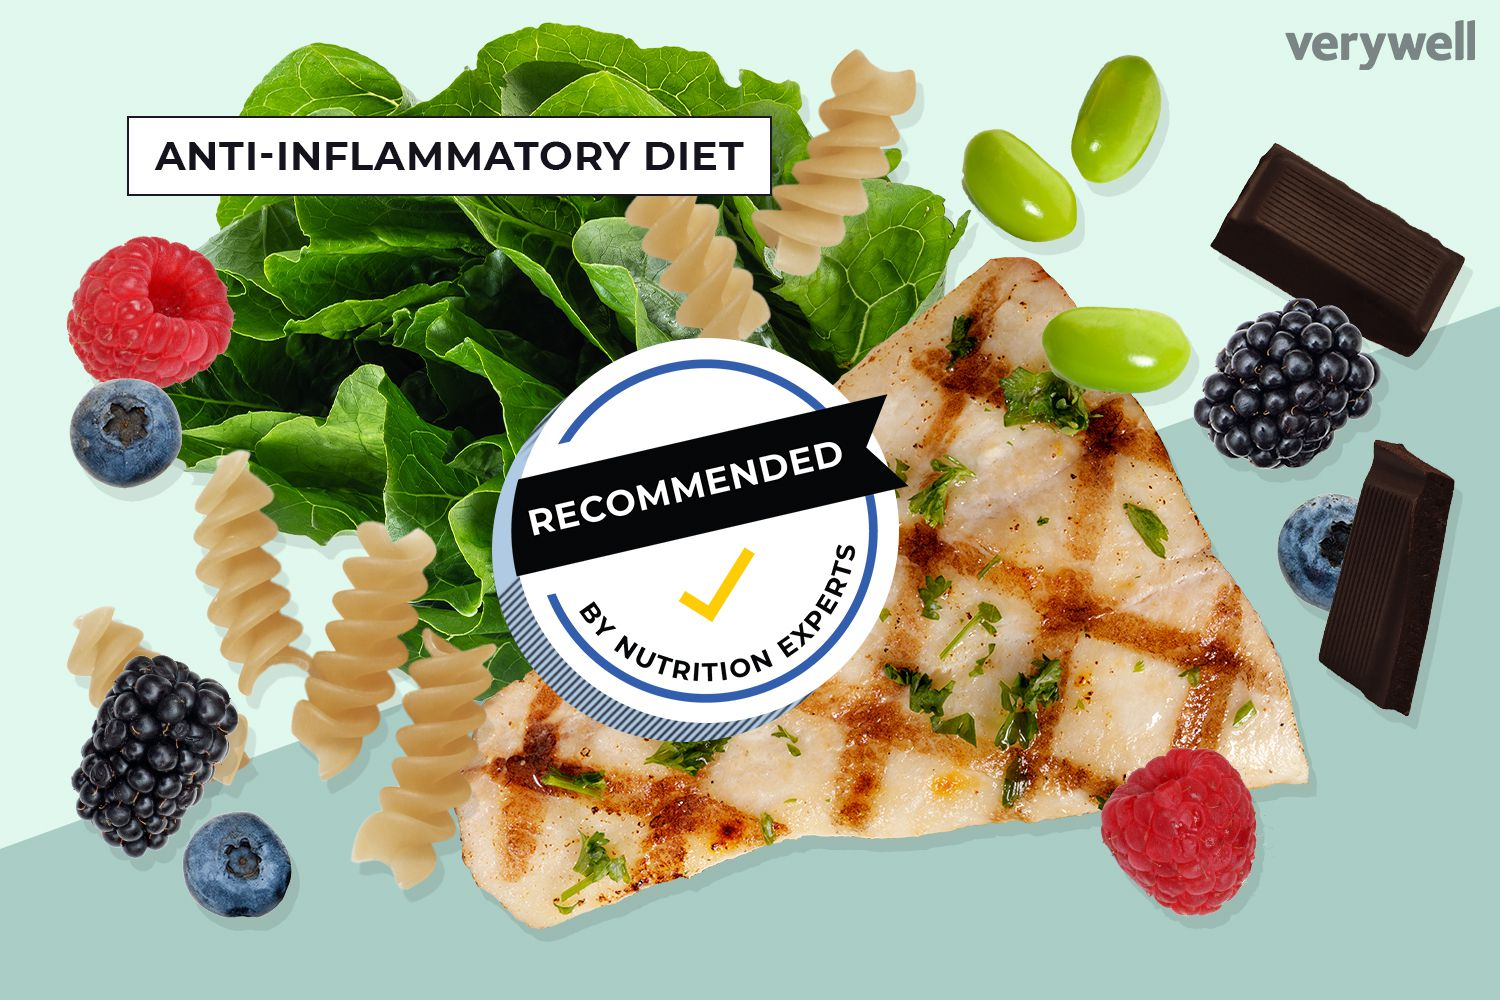 is the anti inflammatory diet medically sound